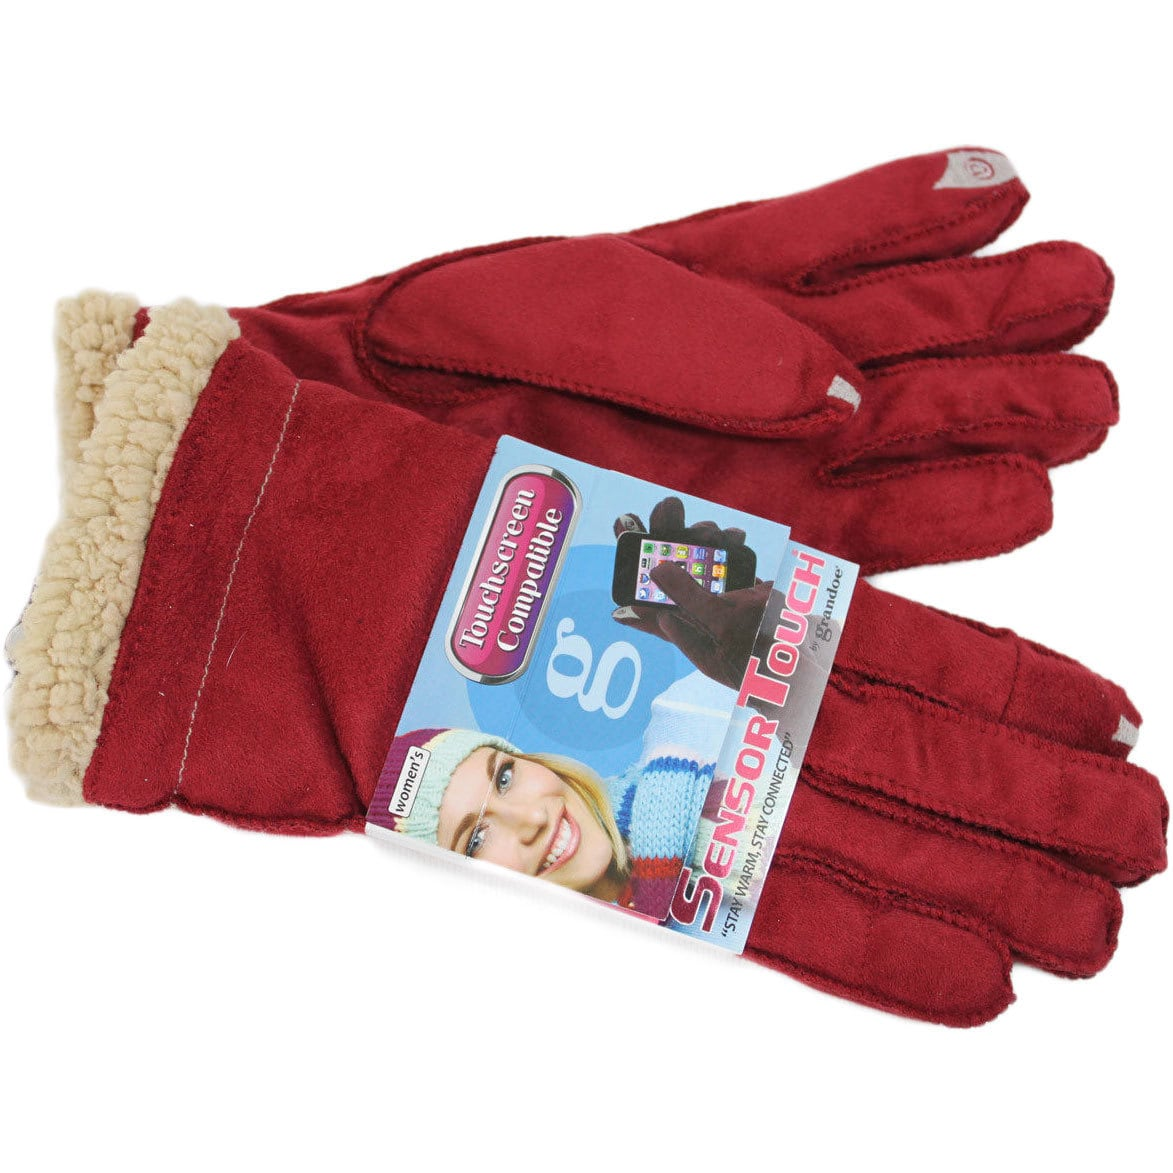 Grandoe Women's Red Cozy Lamb Suede Sensor-Touch Texting Gloves, Medium